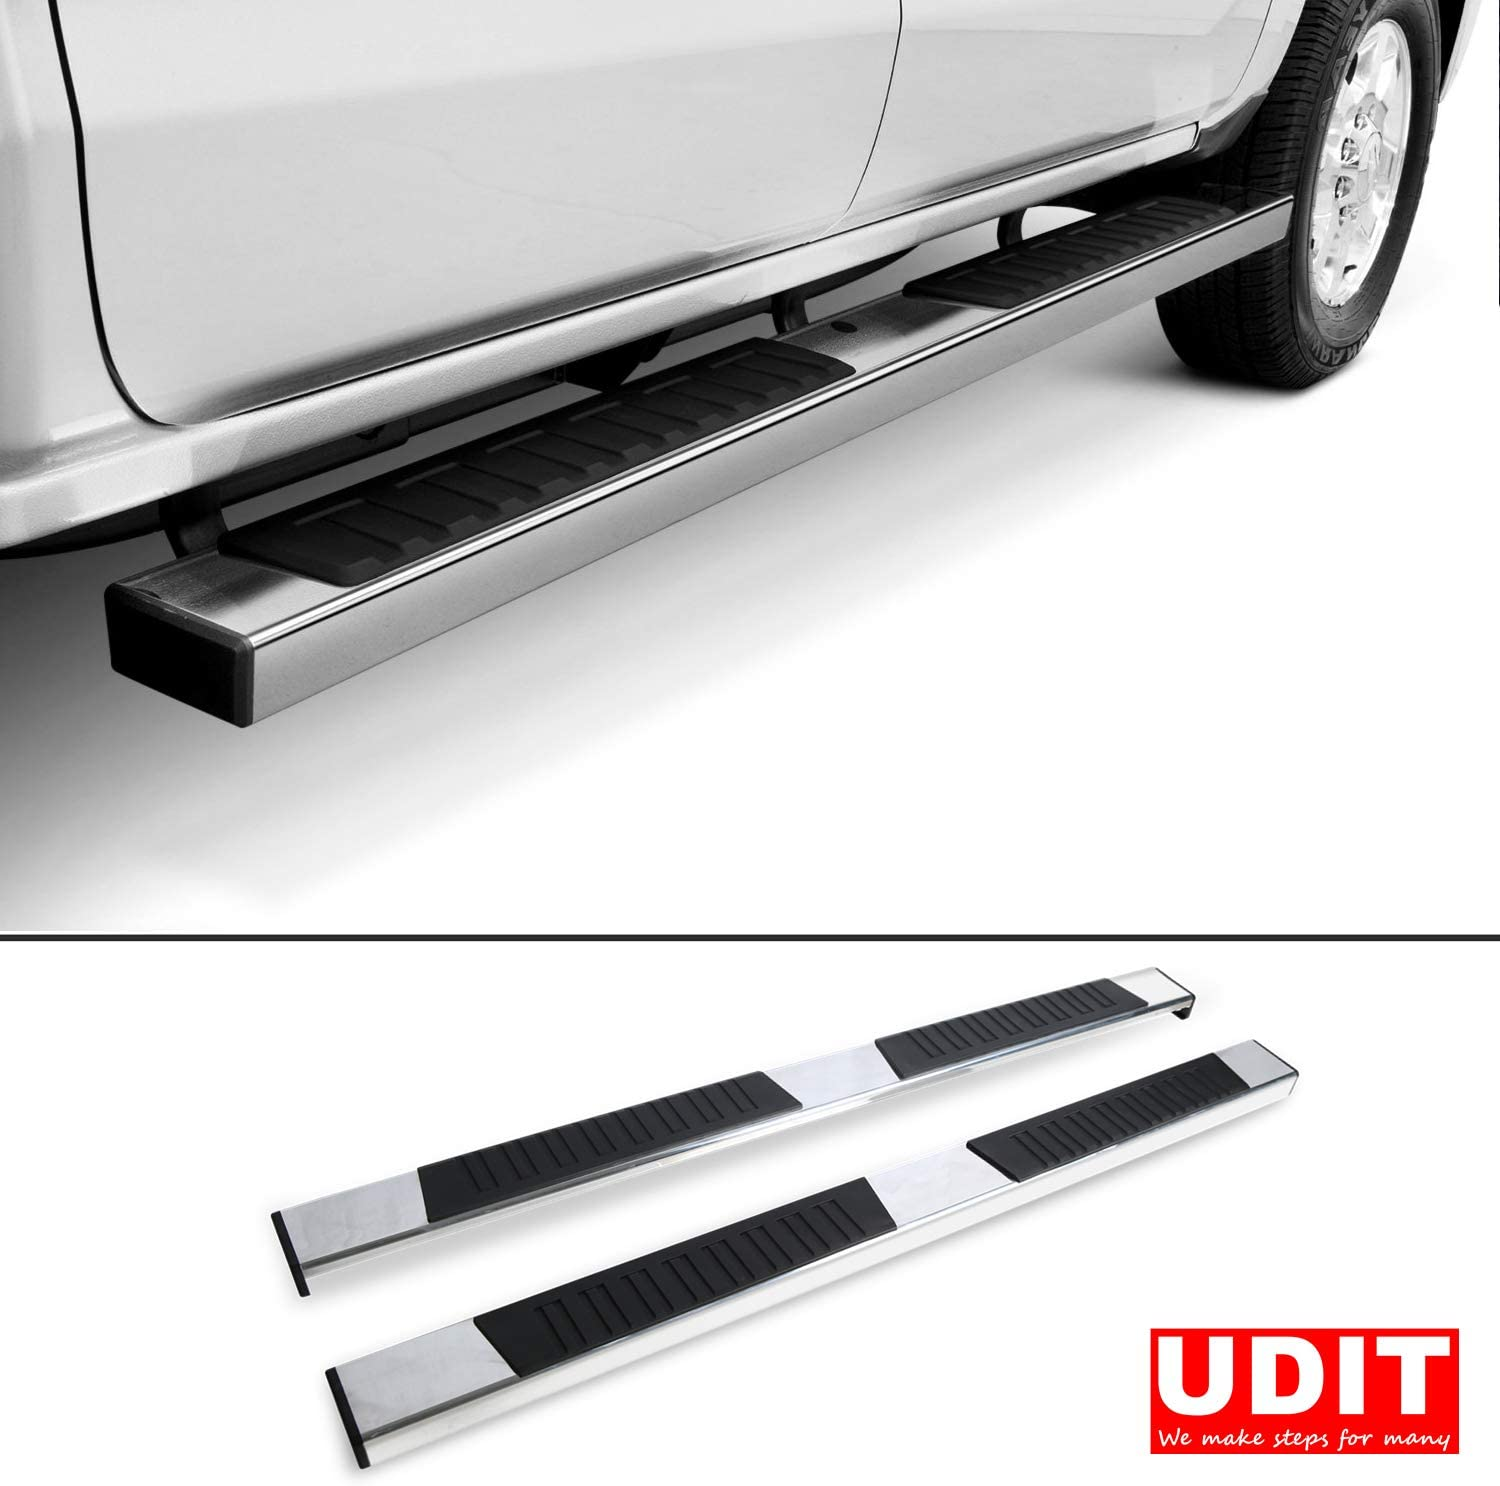 Nerf Bar Side Steps Rail UDIT Off Road 6 Aluminum Polished Running Board Custom Fit 2019-2020 Chevy Silverado /& GMC Sierra 1500 Extended Cab//Double Cab Rocker Panel Mount Excl 2019 1500LD Model